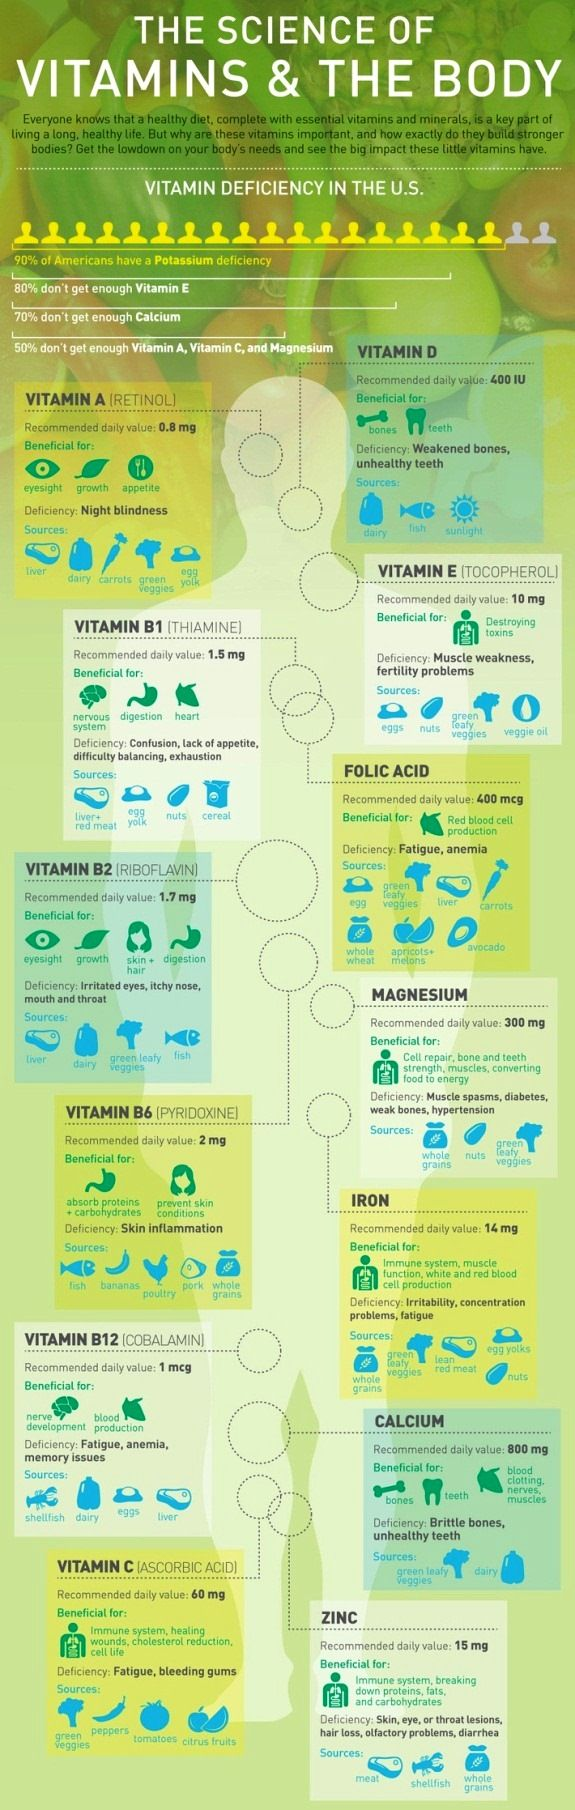 Vitamins & The Body